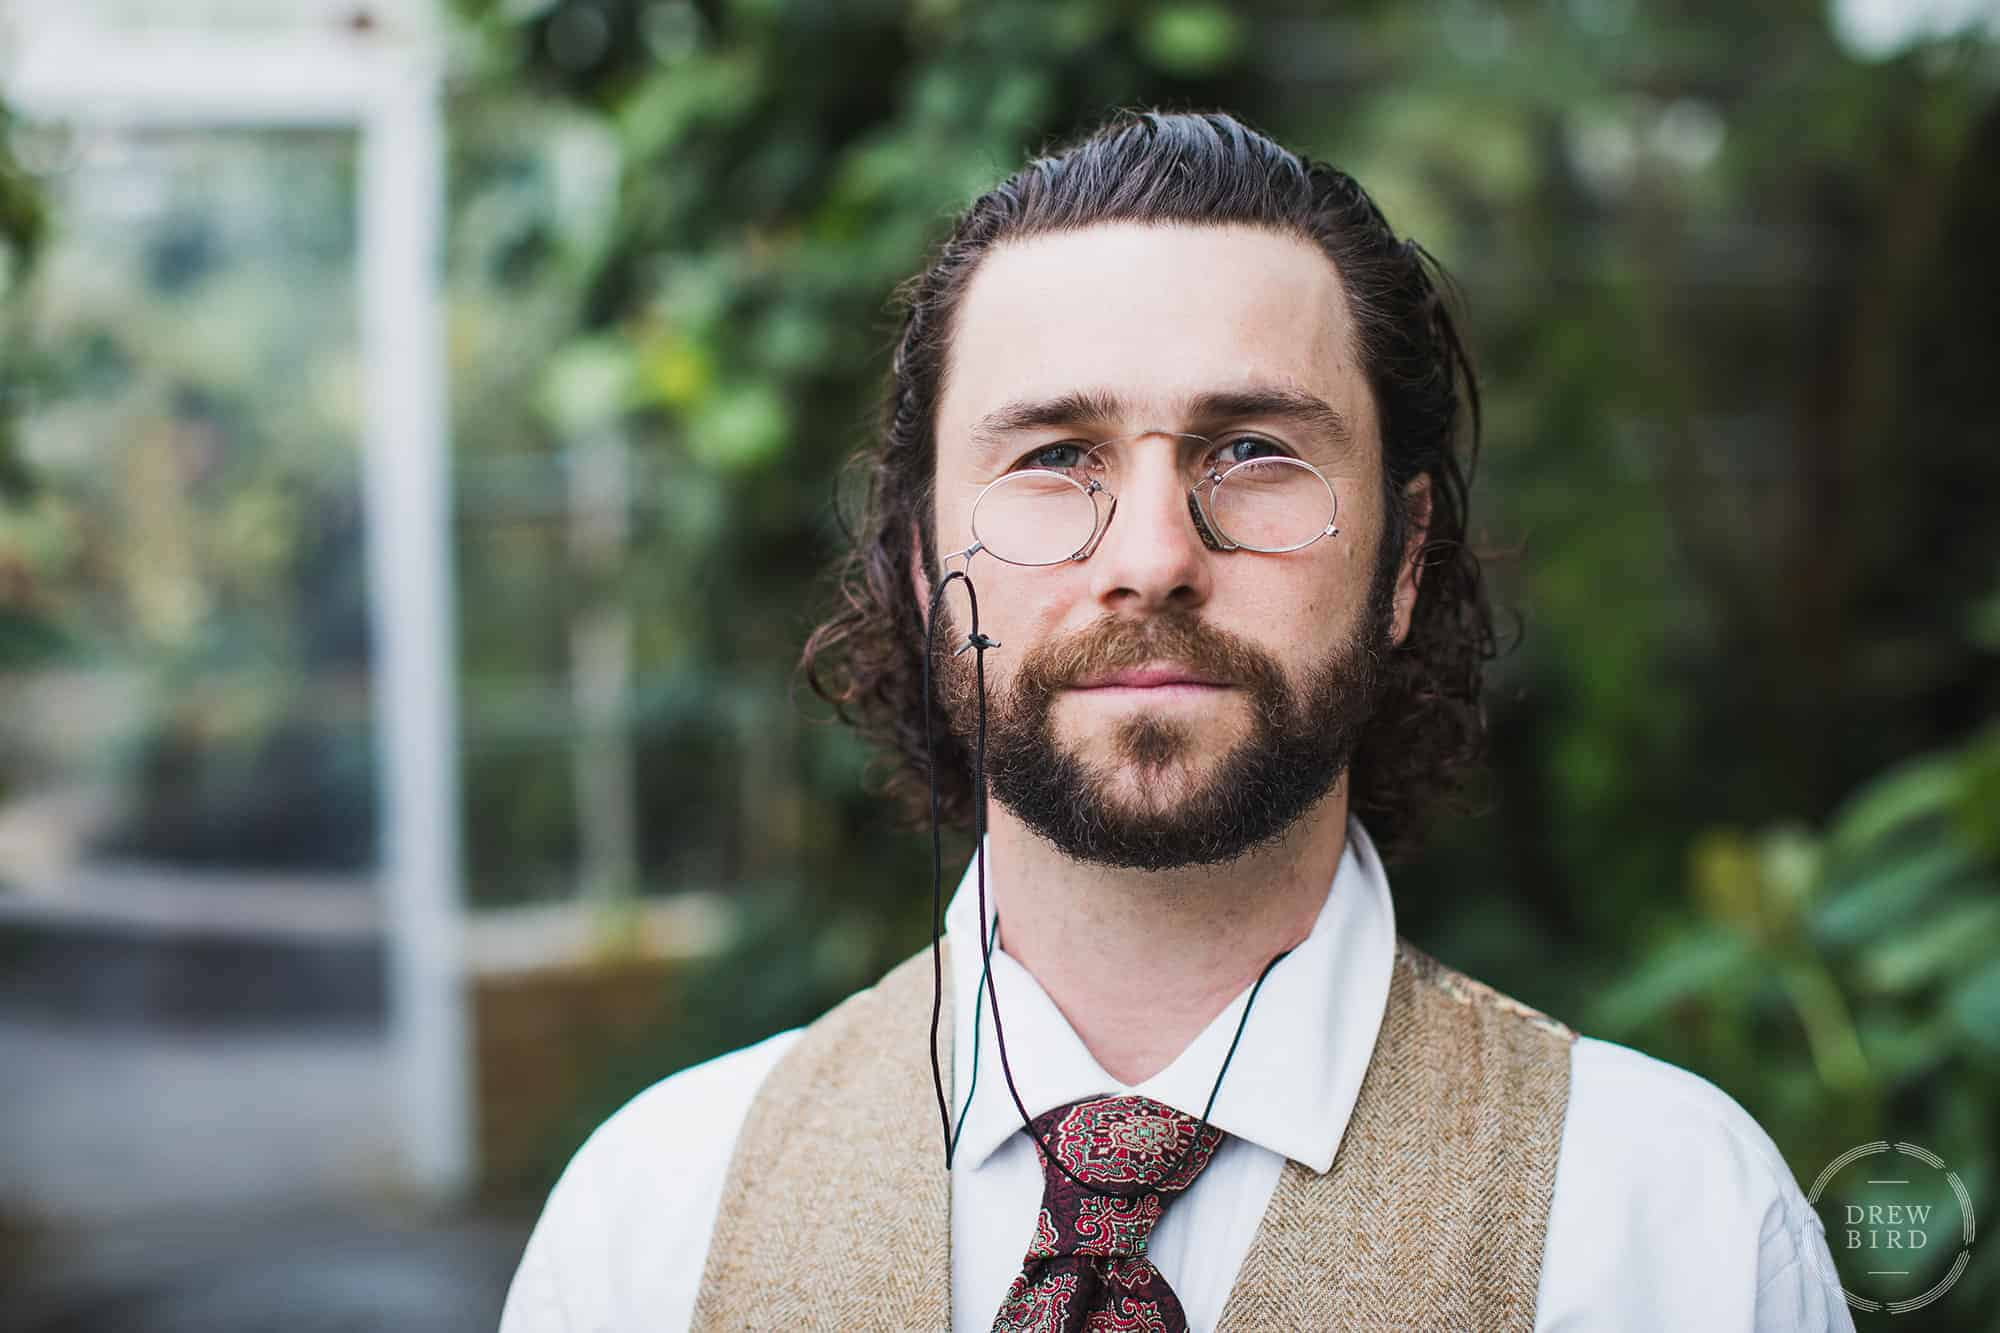 Man with spectacles and a beard at the conservatory of flowers. San Francisco editorial portrait and headshot photographer Drew Bird.